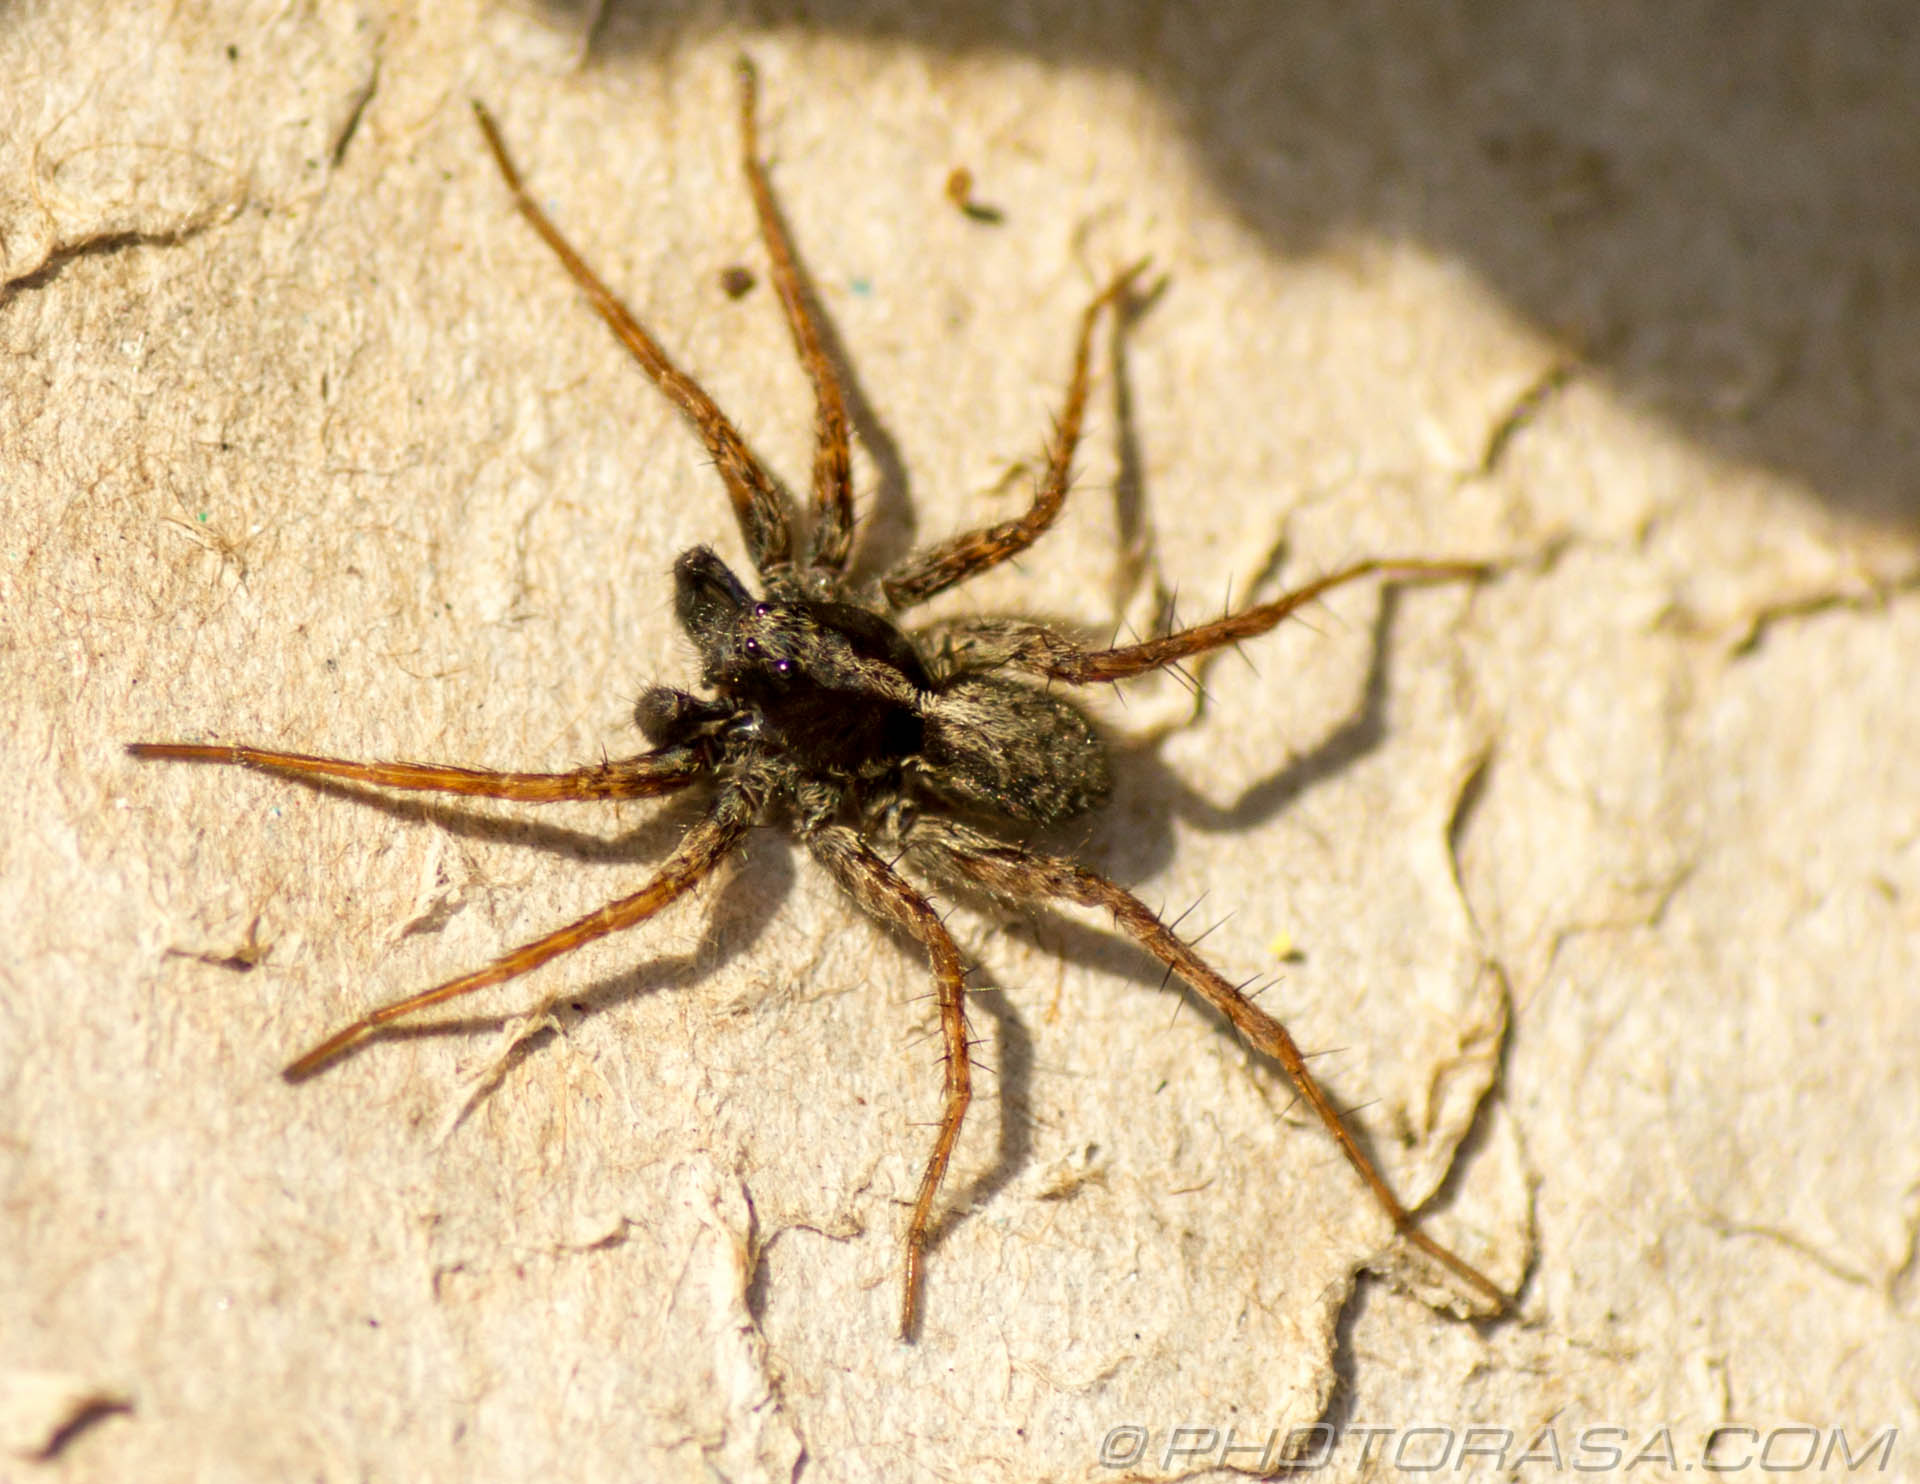 http://photorasa.com/wolf-spiders/male-wolf-spider/